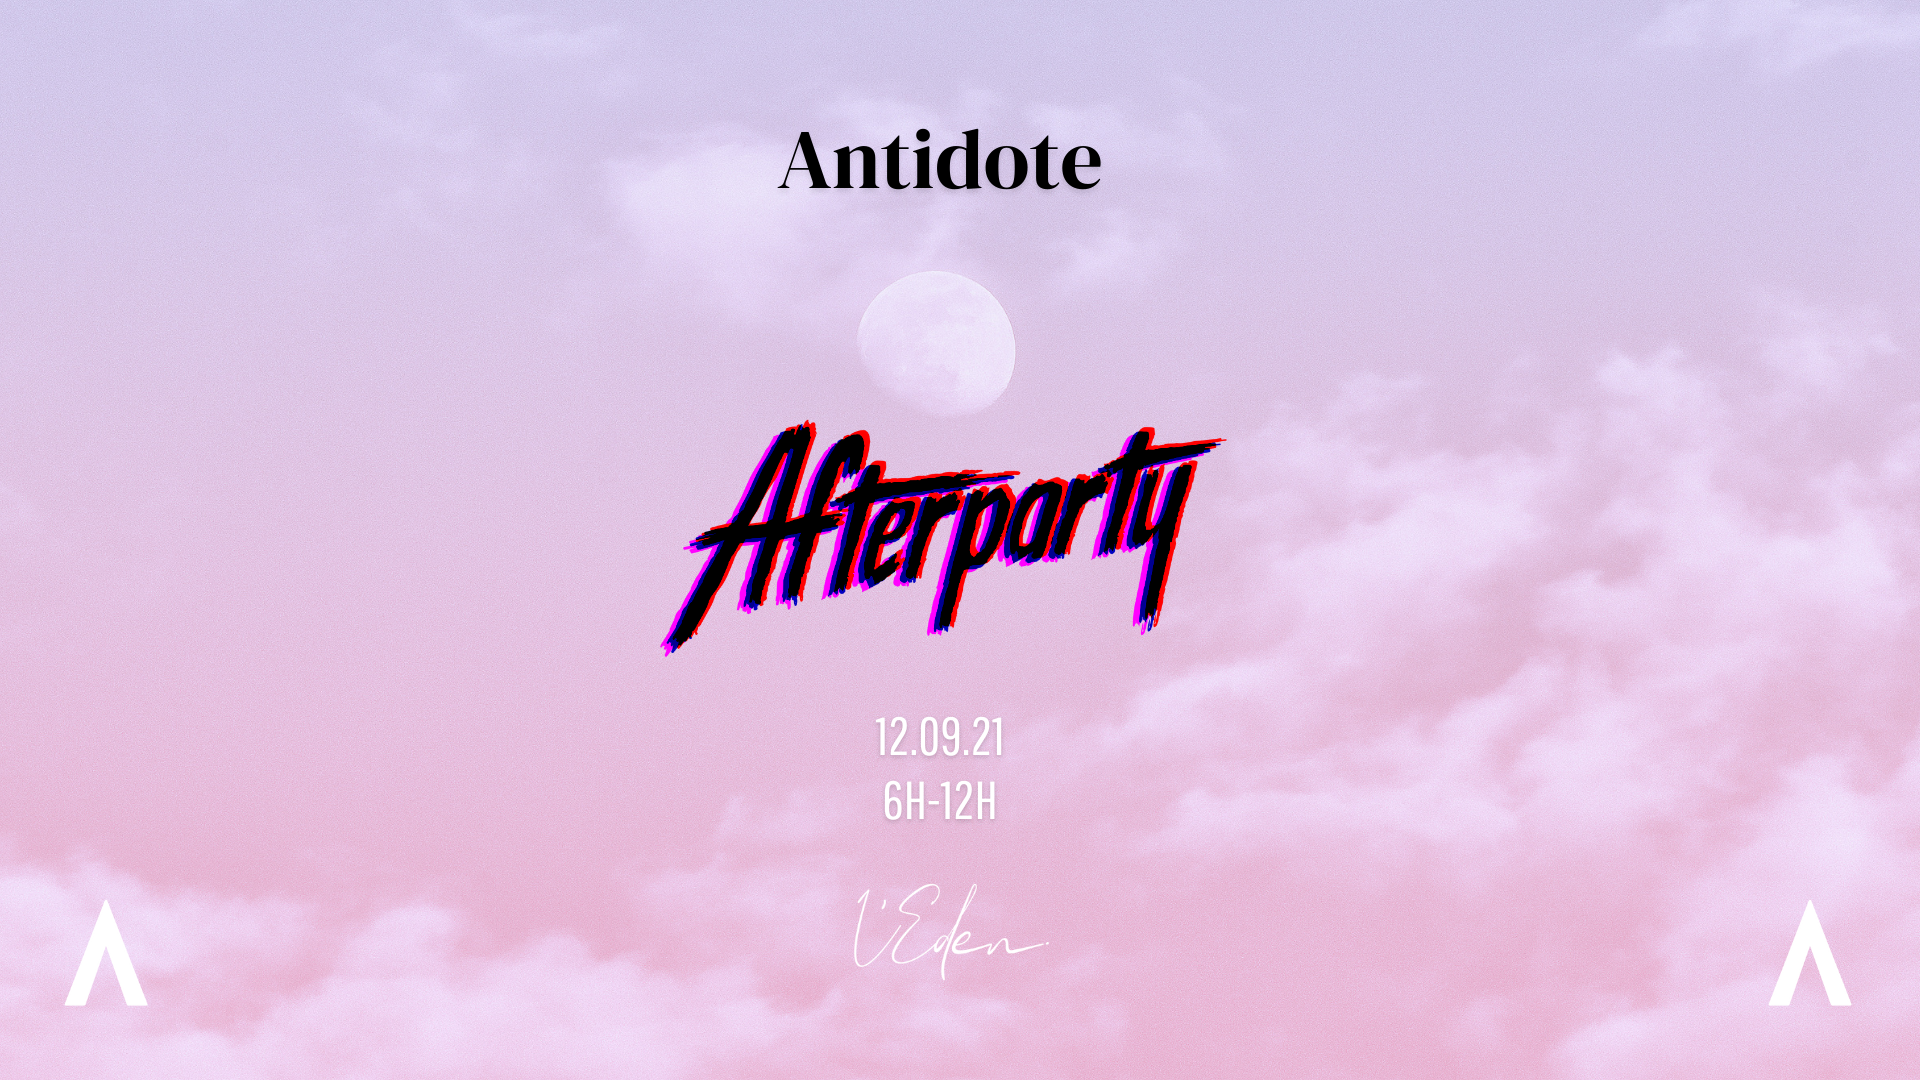 ANTIDOTE AFTER PARTY